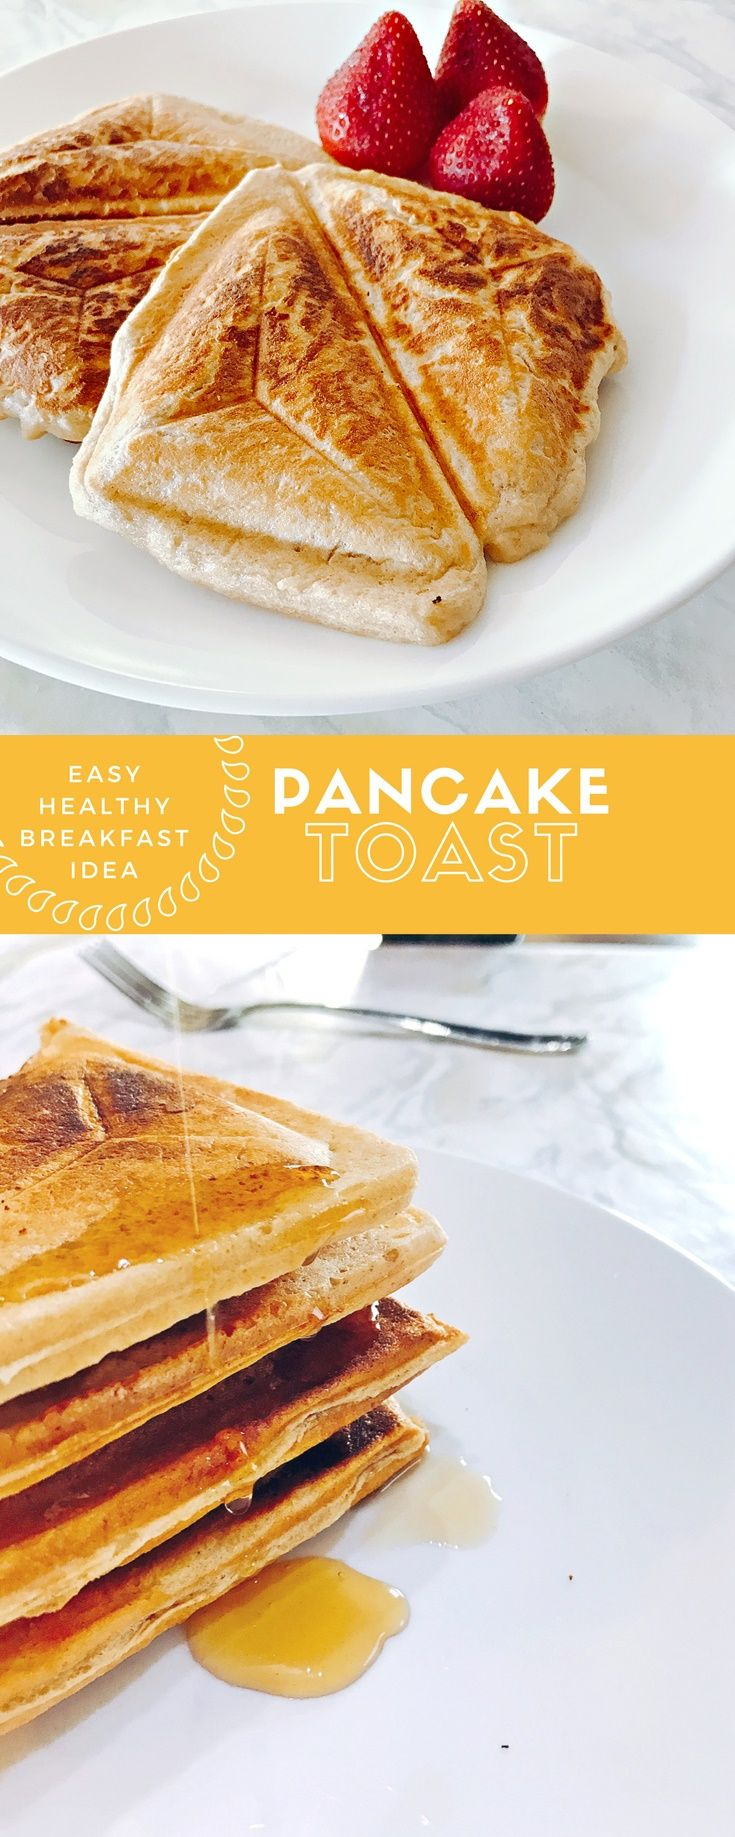 Need a healthy breakfast idea? Look no further than this pancake toast recipe. It is easy, fast, healthy, delicious, and weight loss friendly!